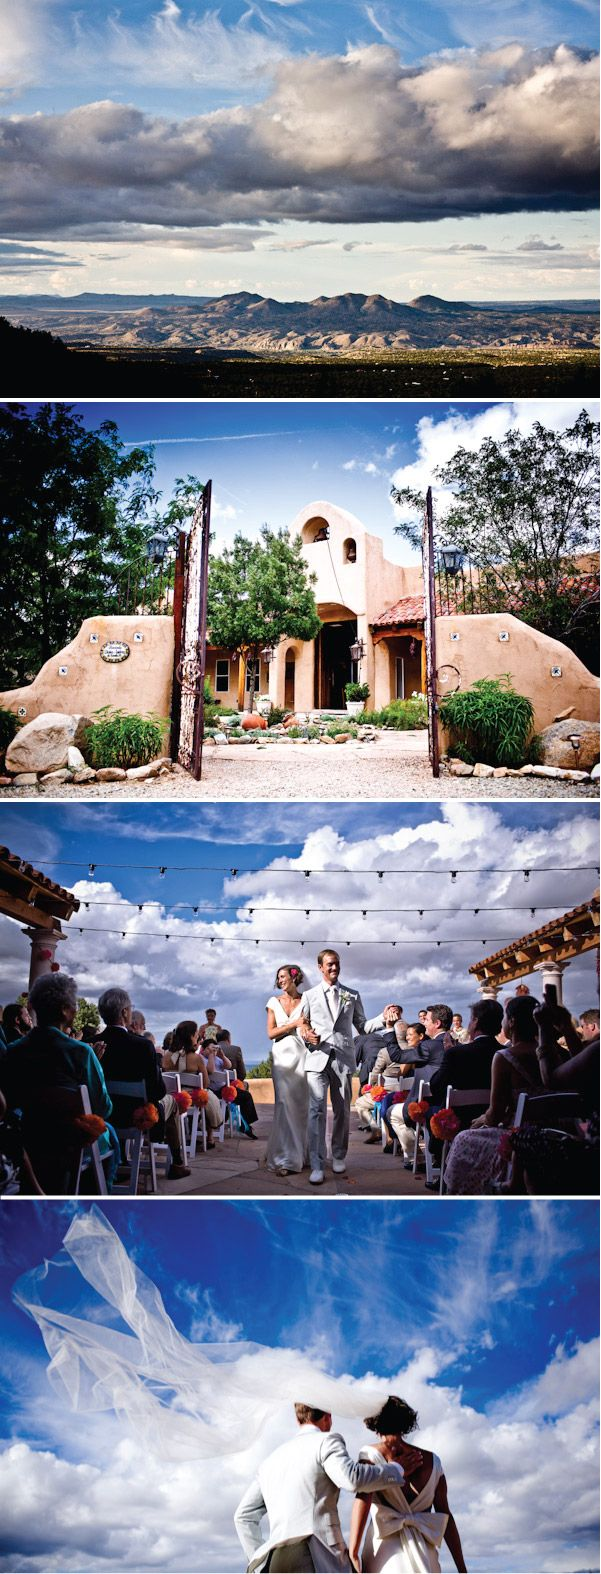 Real Wedding: Renae and Alex's New Mexico Hacienda Celebration, II | Style Me Pretty